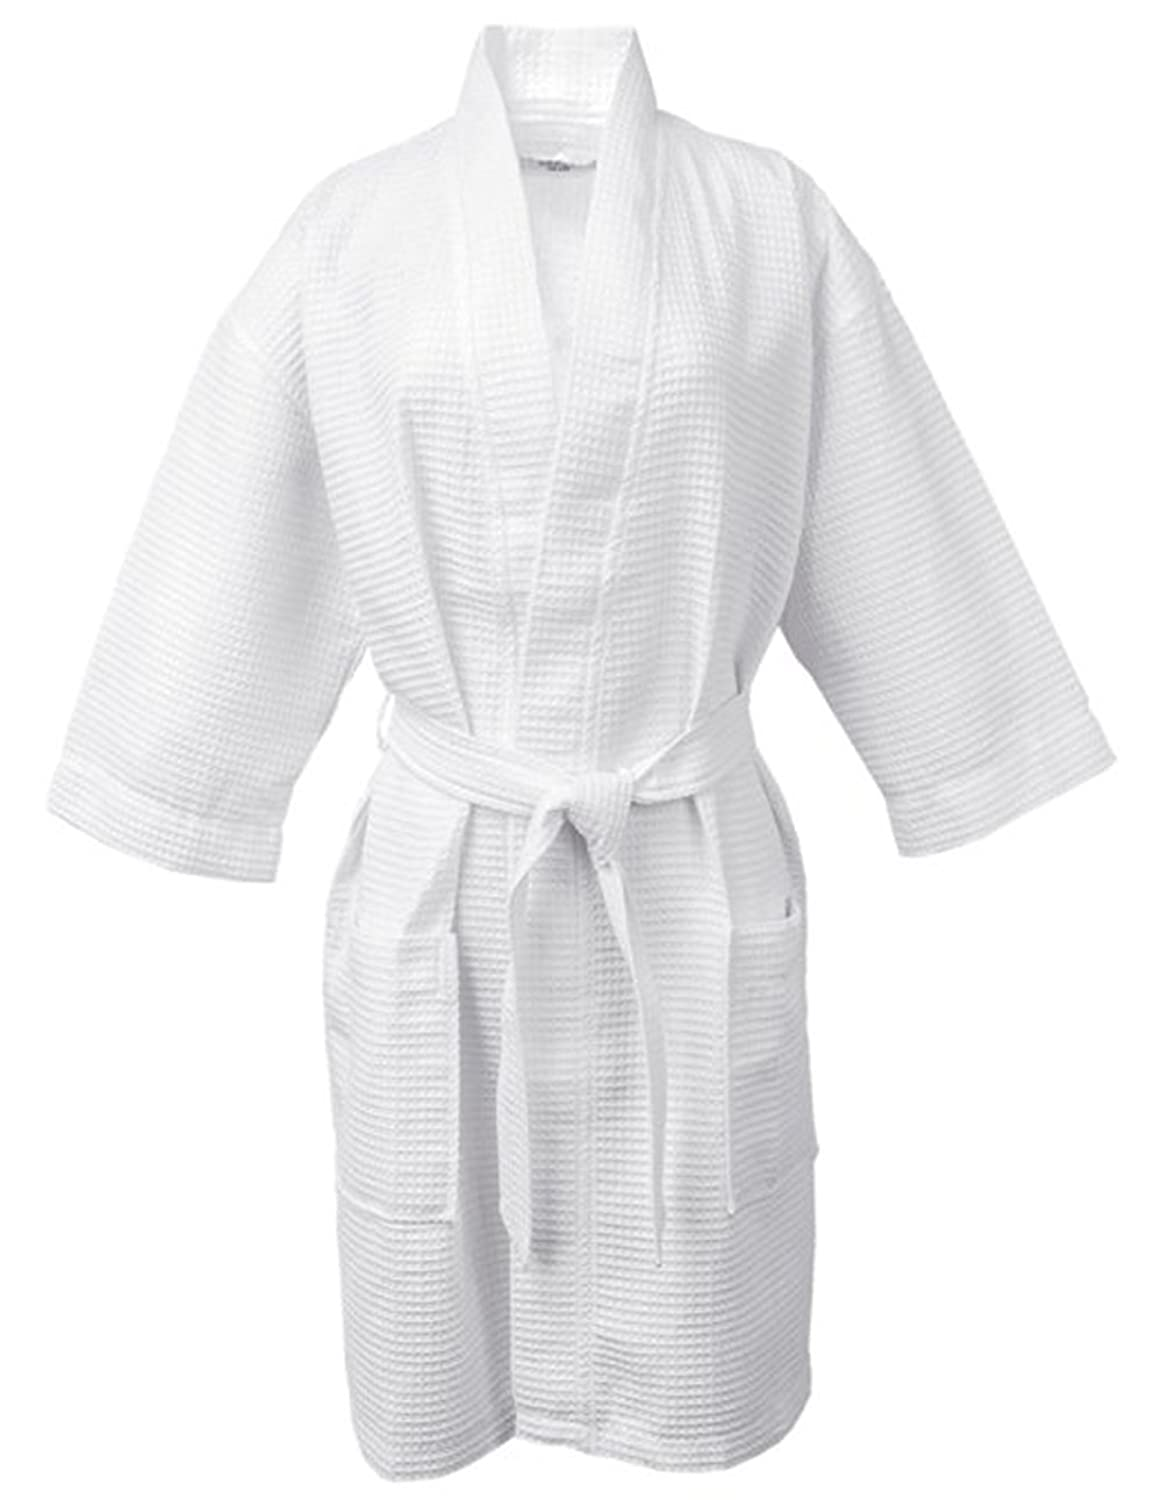 5899e3798d Luxehome cotton waffle bathrobe luxury weave waffle soft spa robes for  women and men jpg 1162x1500